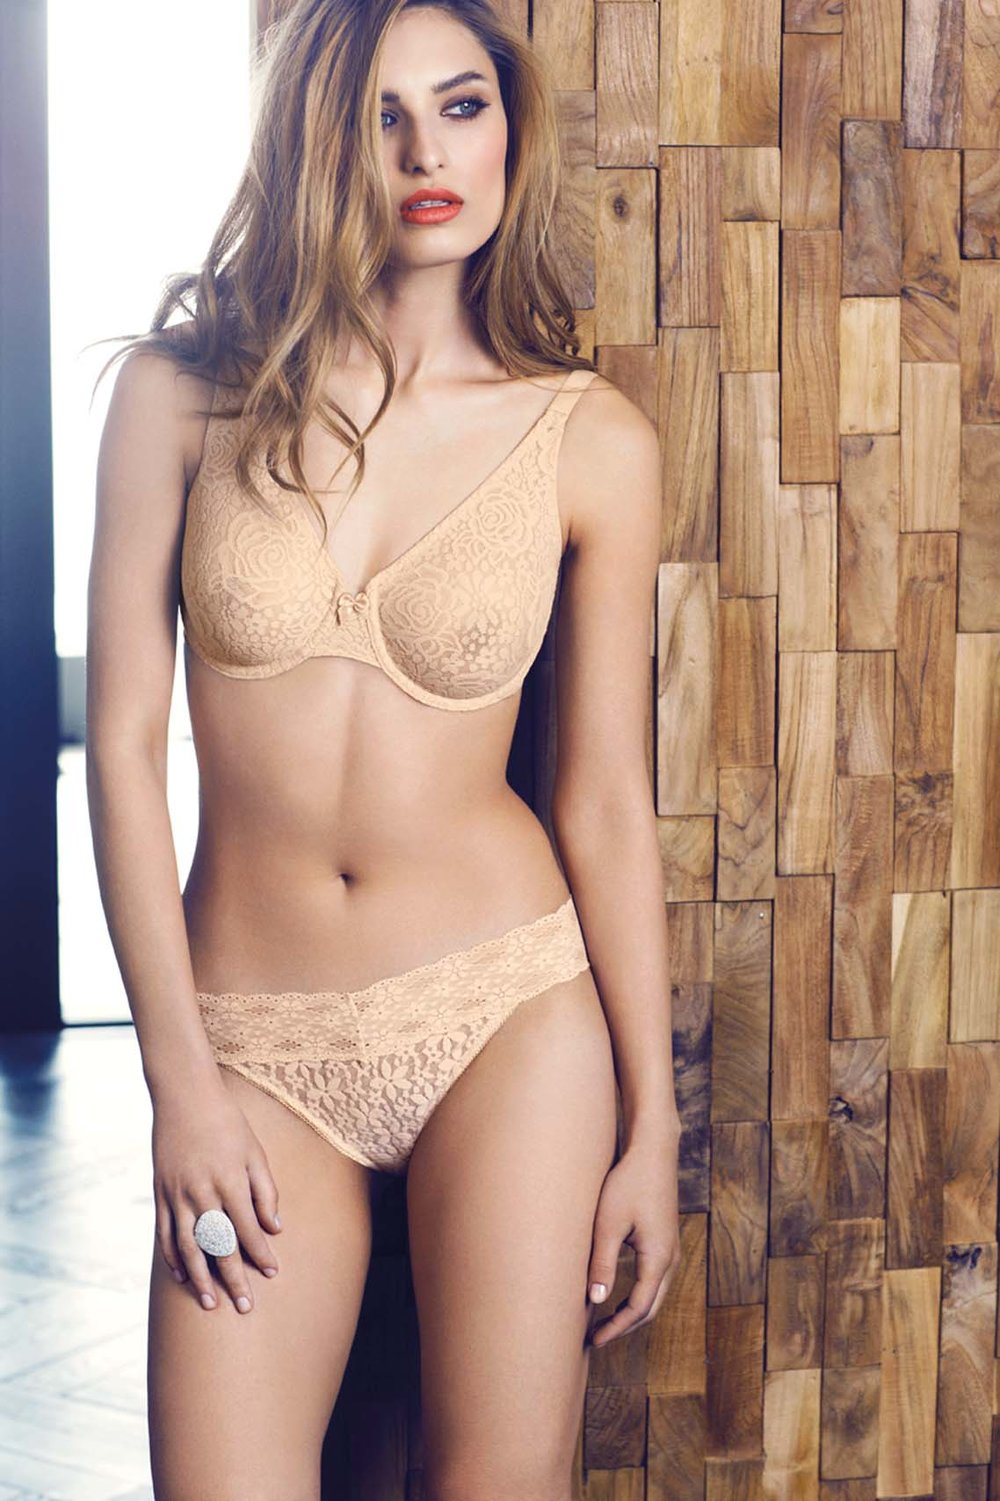 WACOAL-LINGERIE-HALO-LACE-NATURALLY-NUDE-MOULDED-UNDERWIRE-BRA-WA851205-HALO-THONG-WA879205-CONSUMER-WEB-SS16 (1).jpg